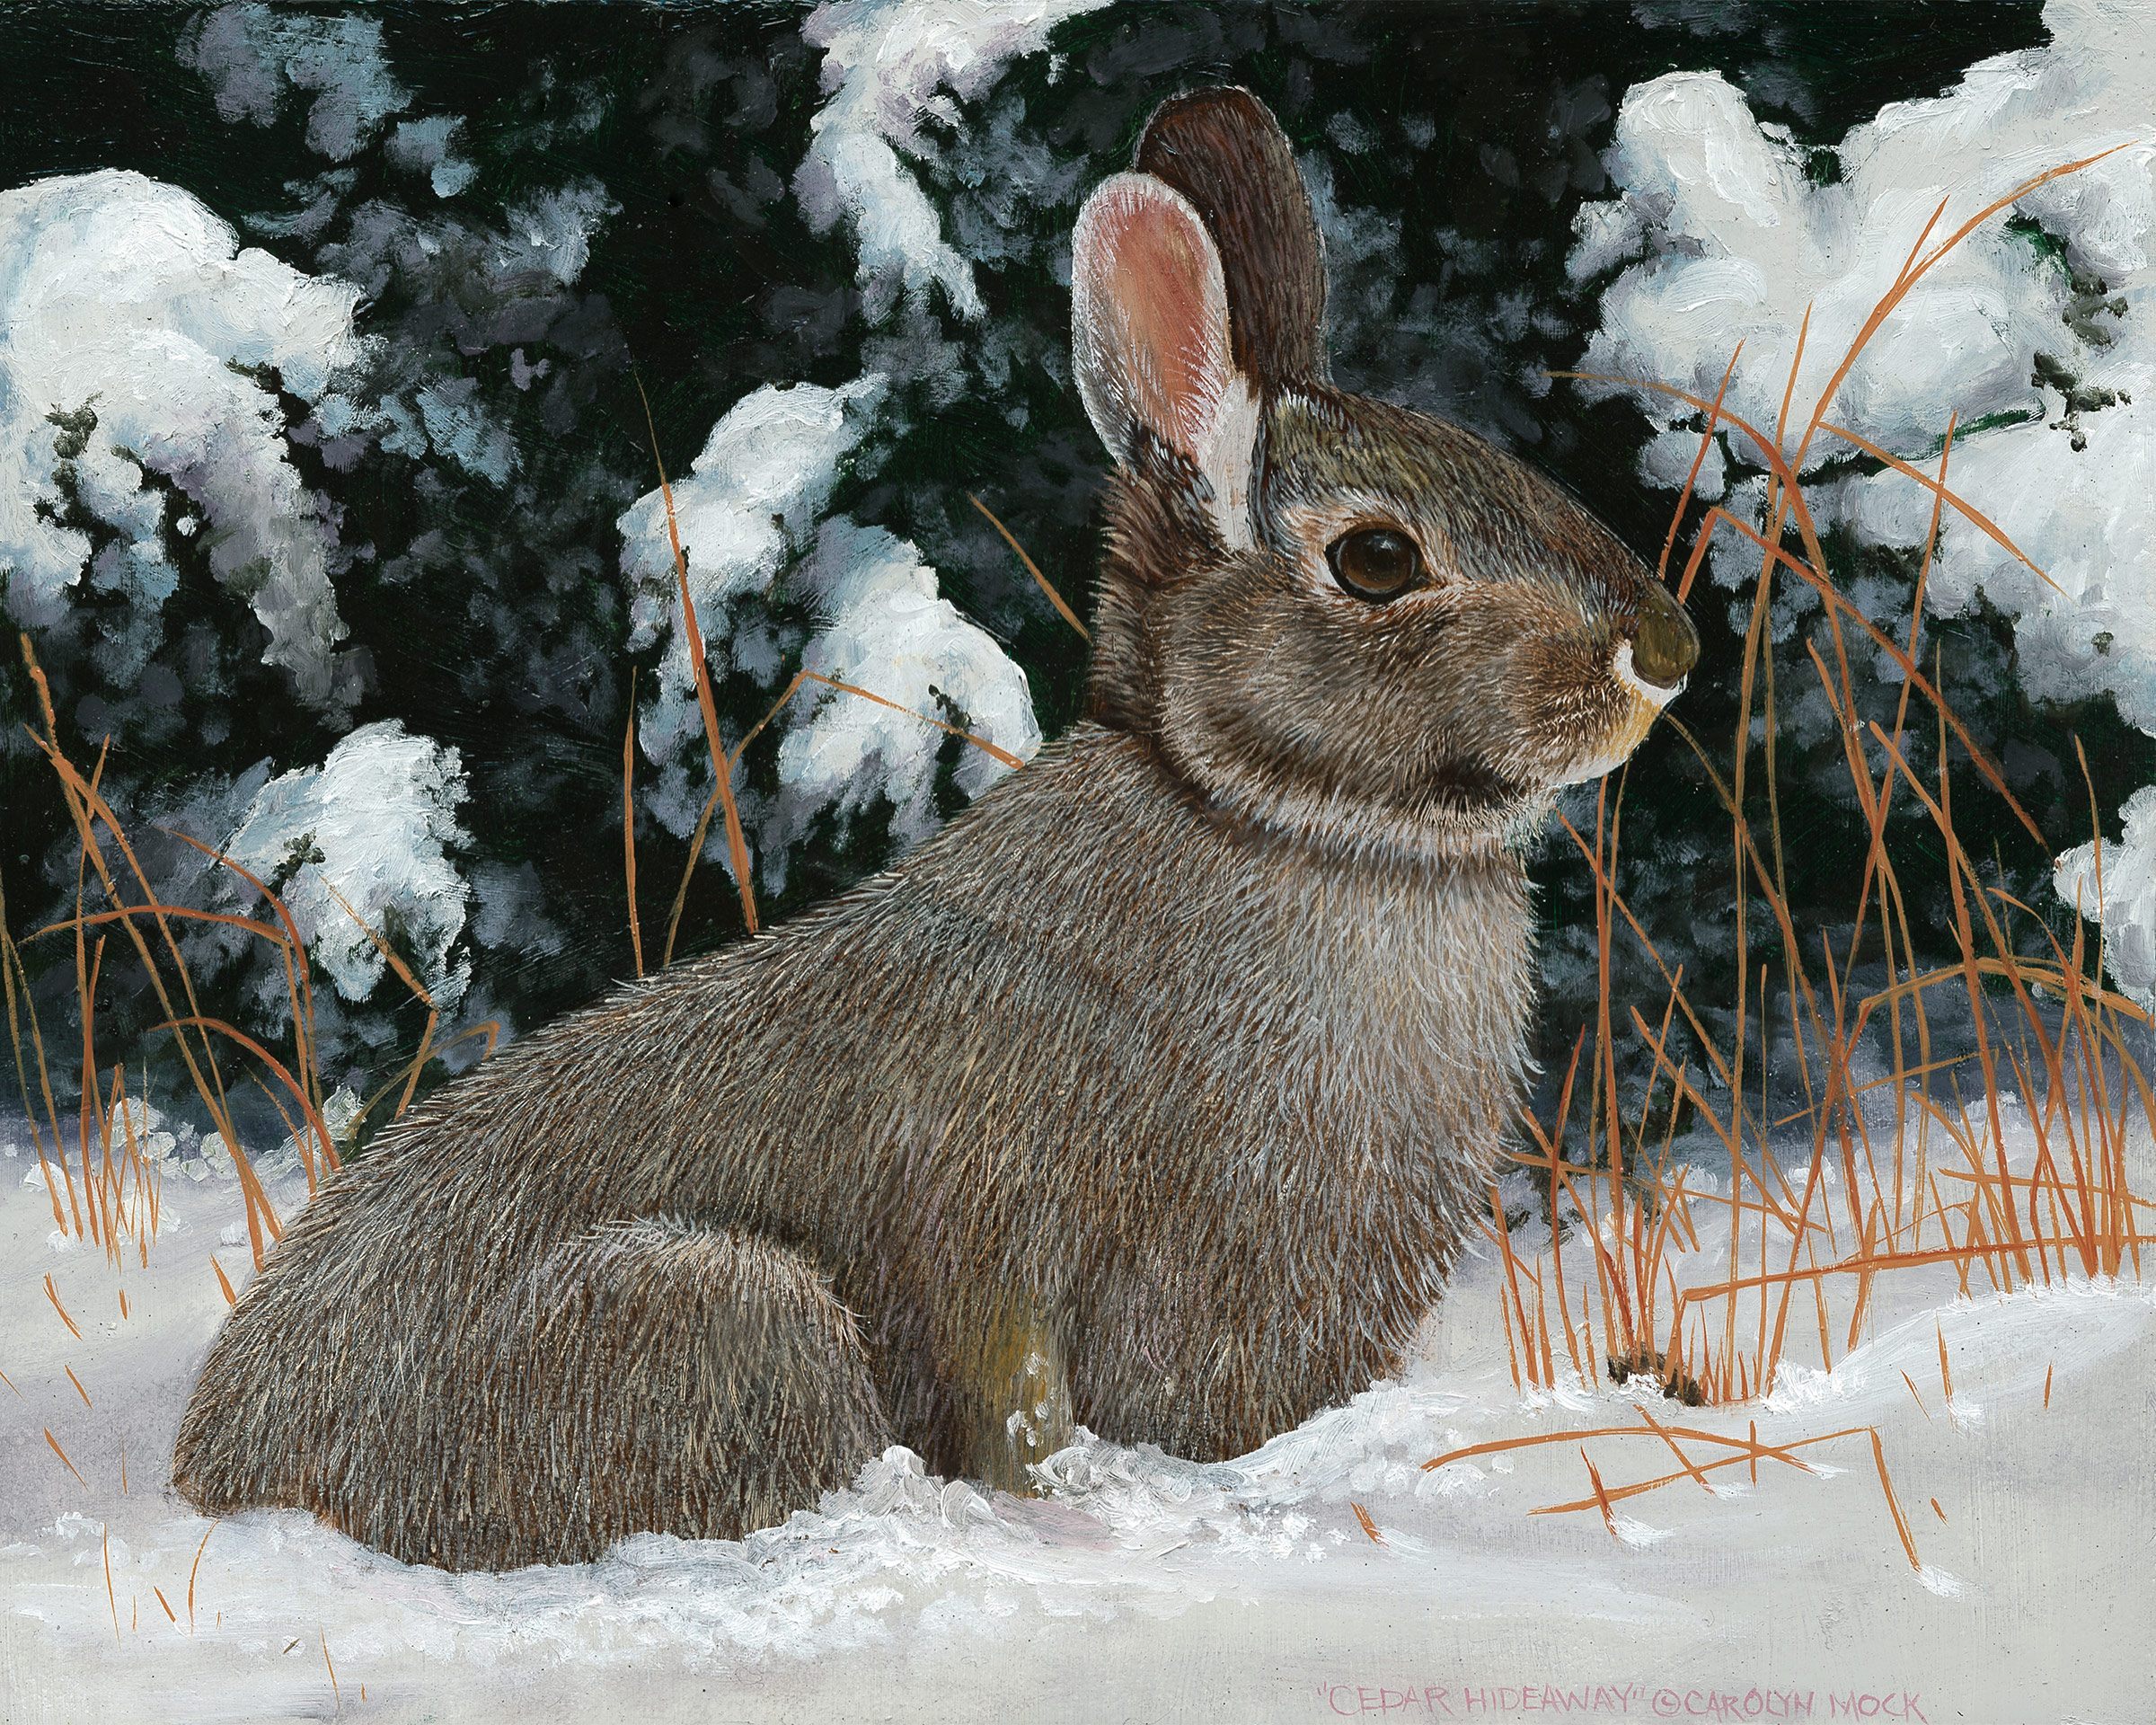 A small bunny takes shelter in a snowy field